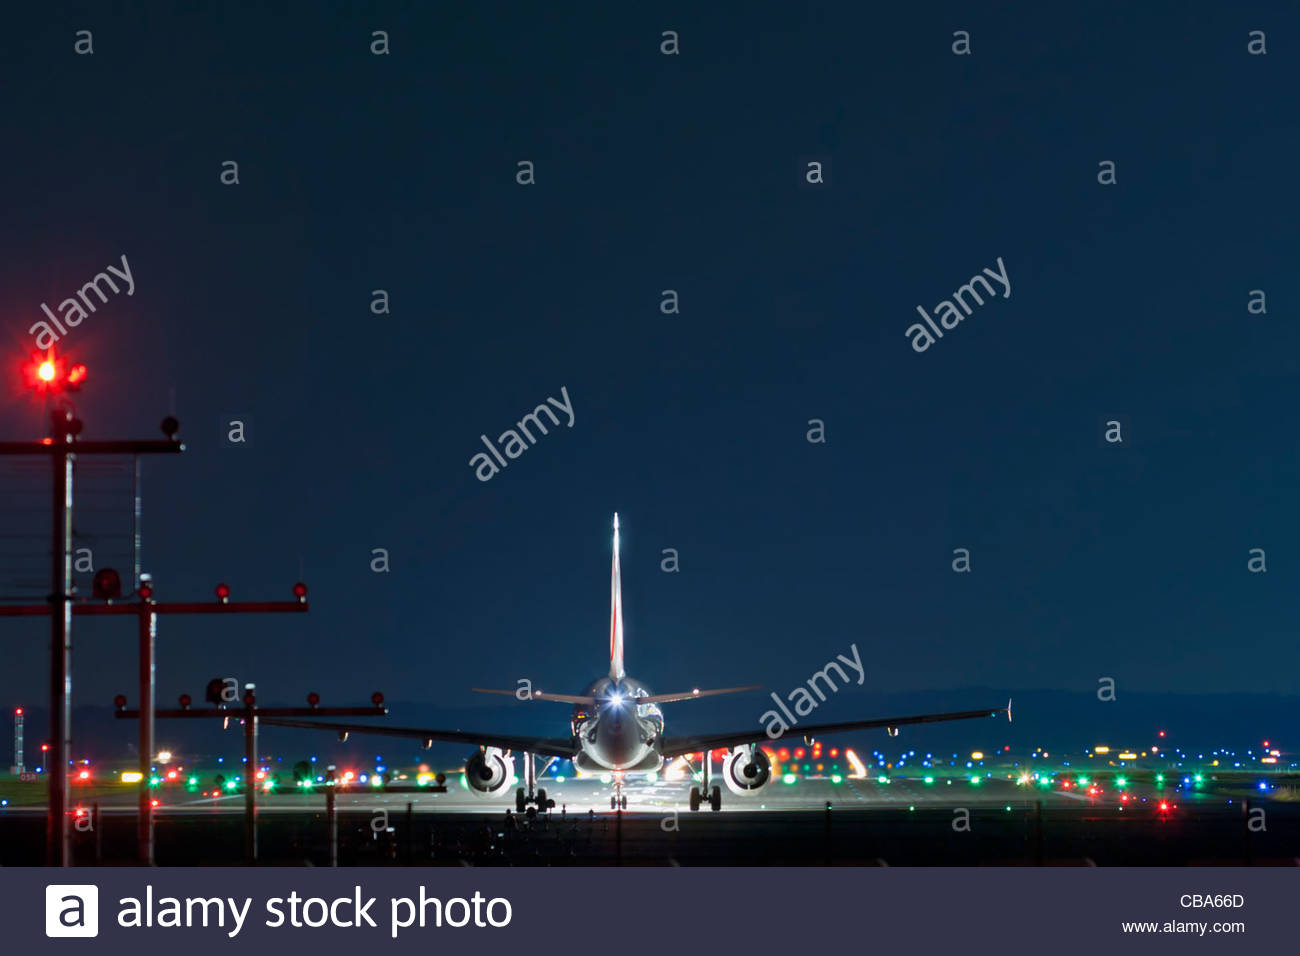 night airport starting twin-jet airliner Airbus runway illumination landing lights darkness noise Duesseldorf Germany - Stock Image